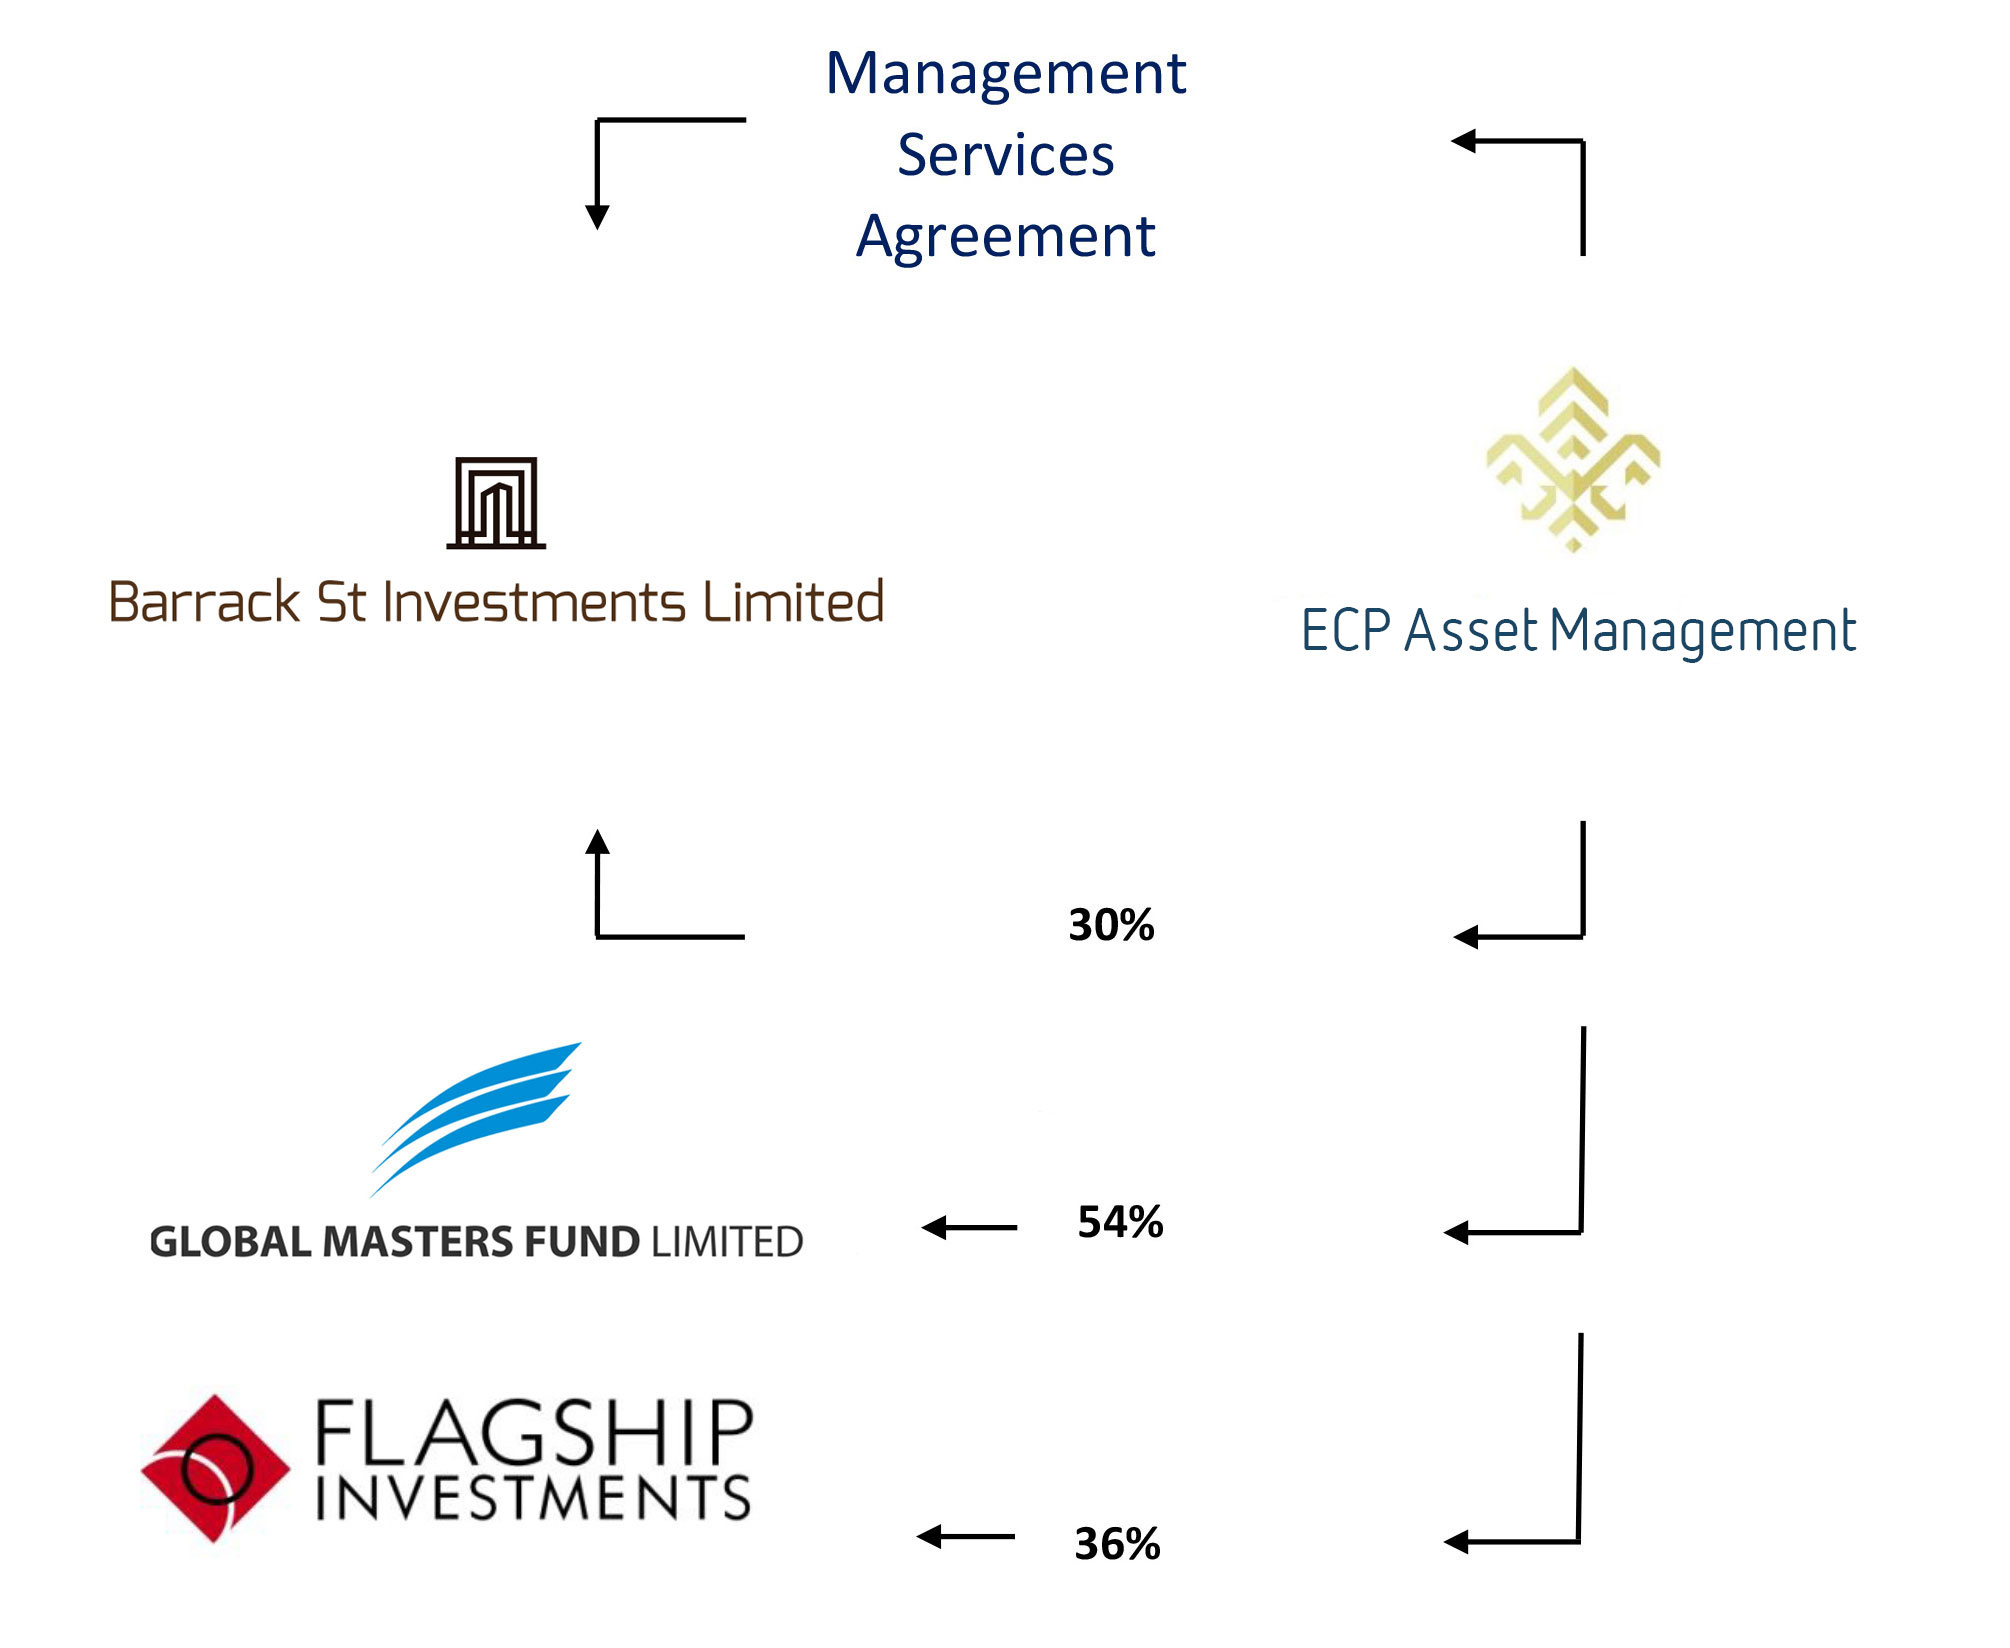 Investment Management Agreement About Barrack St Investment Ltd